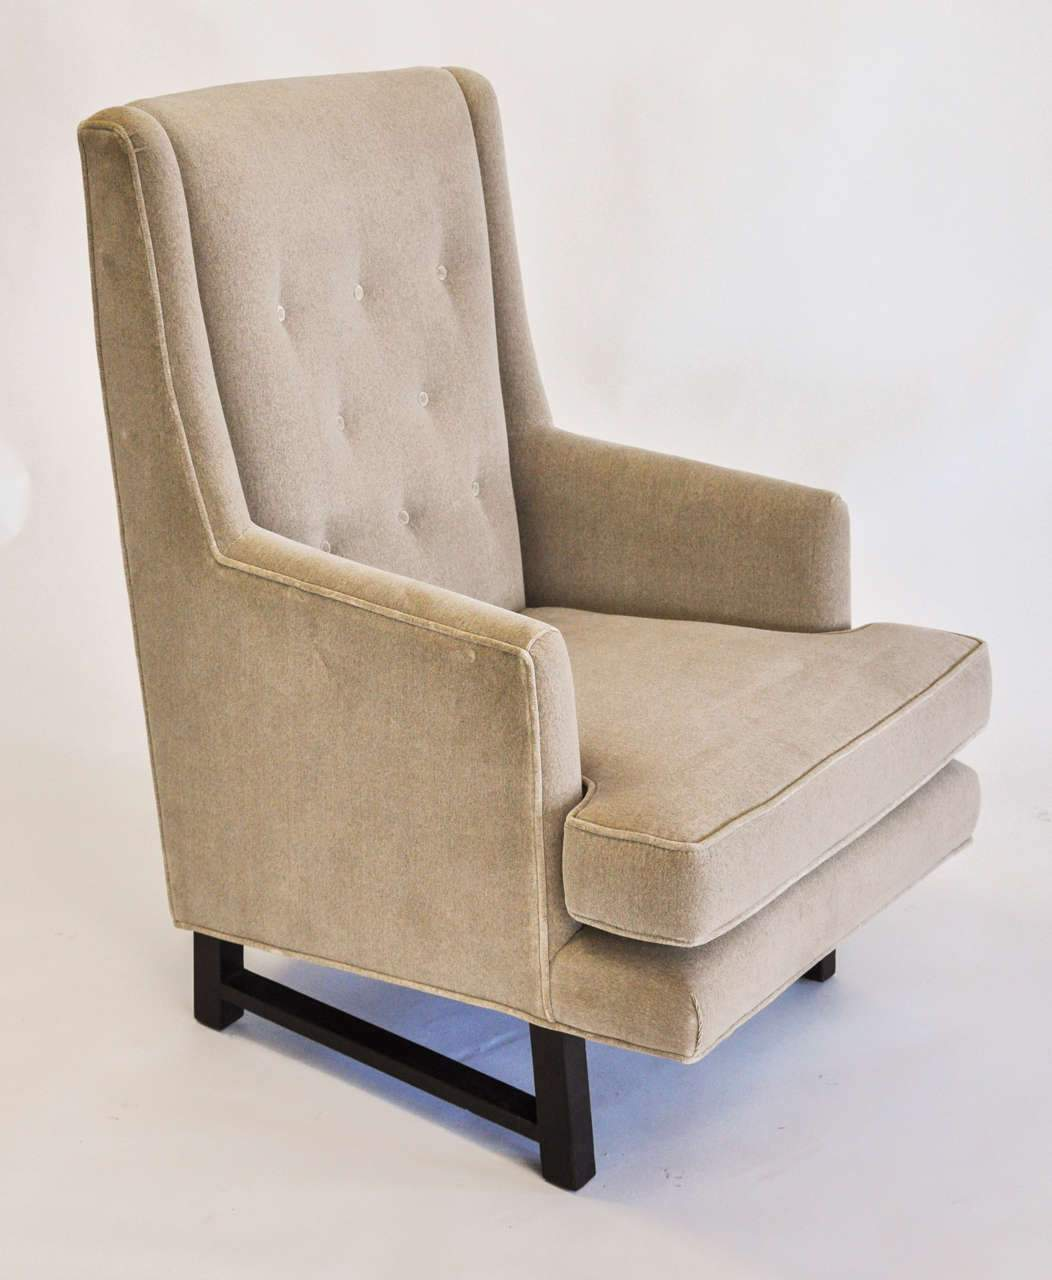 Armchair Designed by Edward Wormley for Dunbar, 1950s